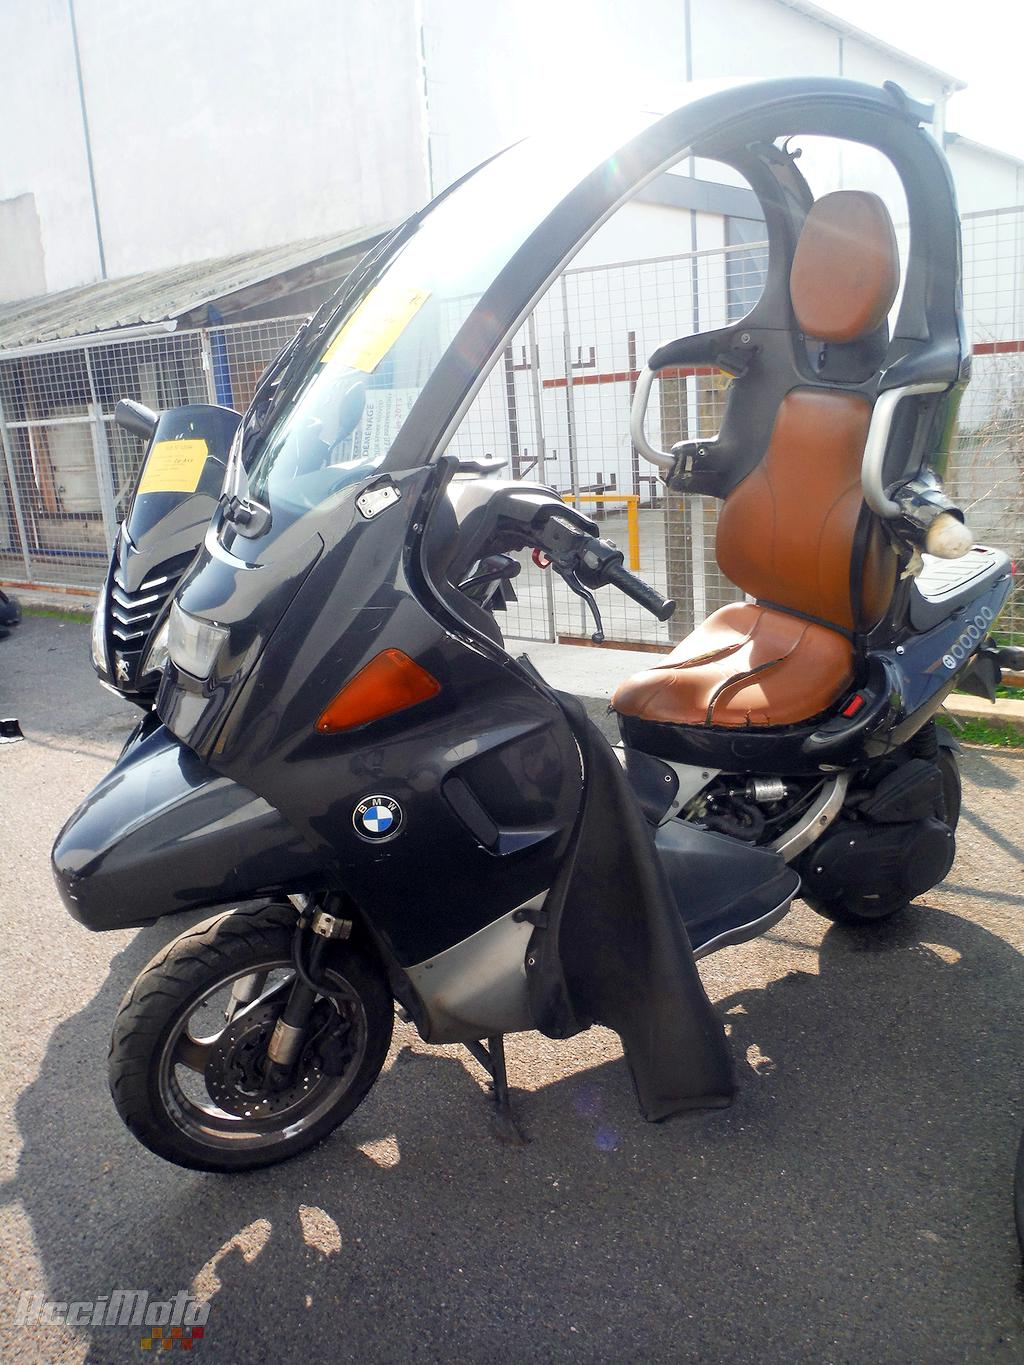 moto accident e bmw c1 125. Black Bedroom Furniture Sets. Home Design Ideas